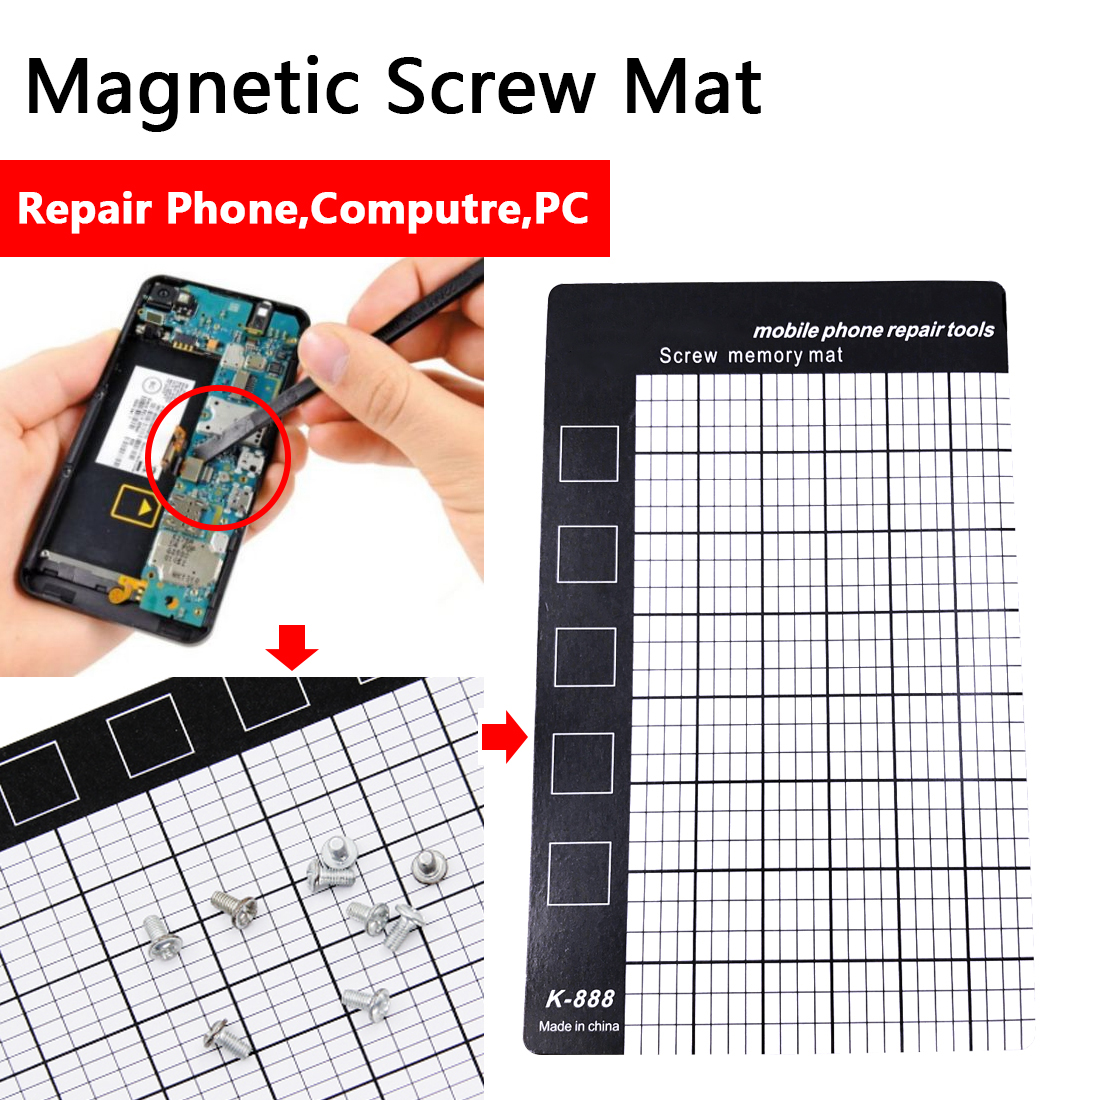 Screw Memory Mat White Magnetic Working Memory Pad Mobile Phone Repair Tools Palm Size 145 X 90mm